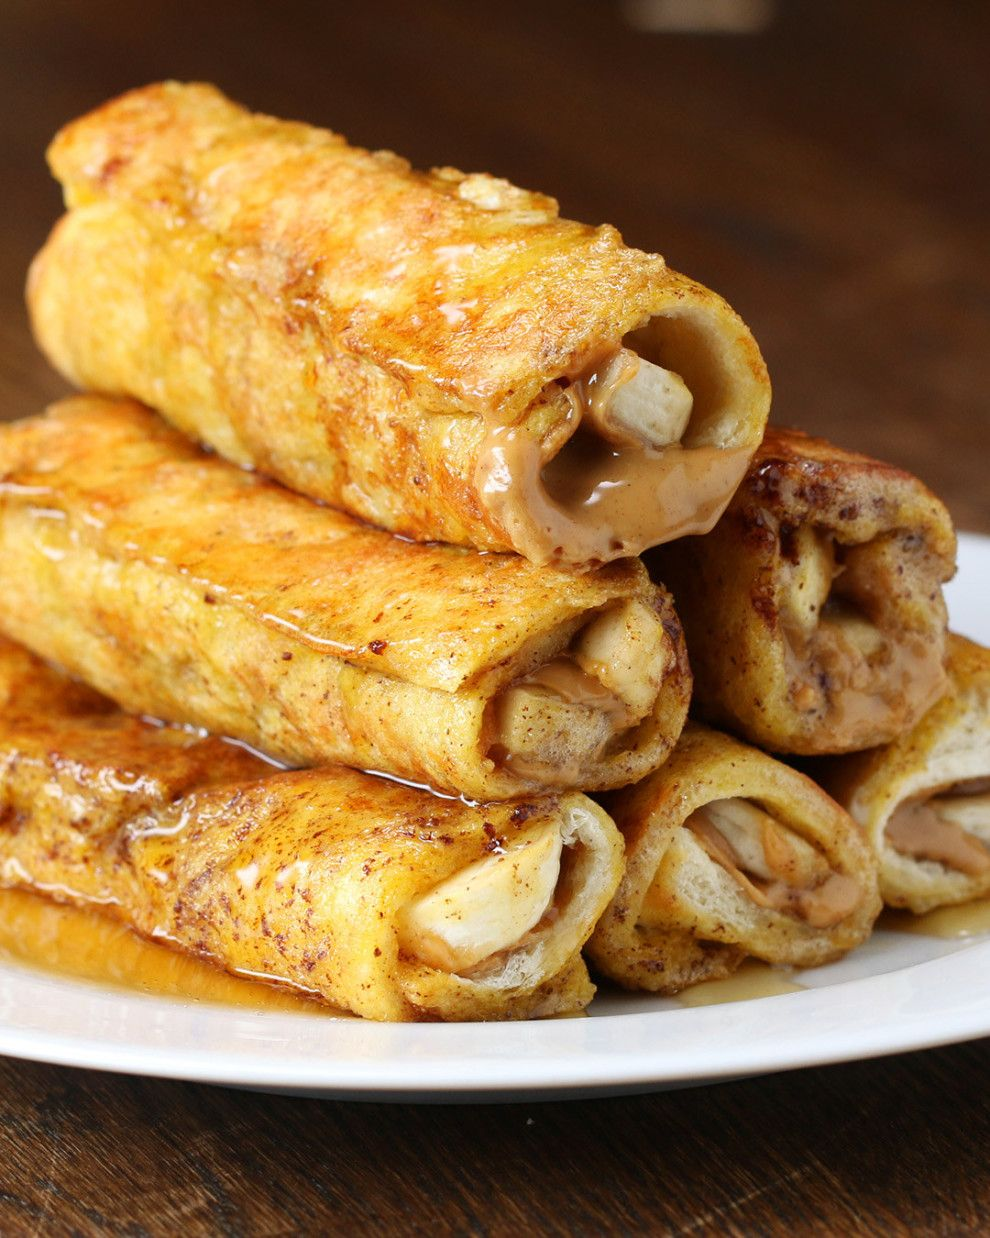 Peanut Butter Banana French Toast Roll-Up